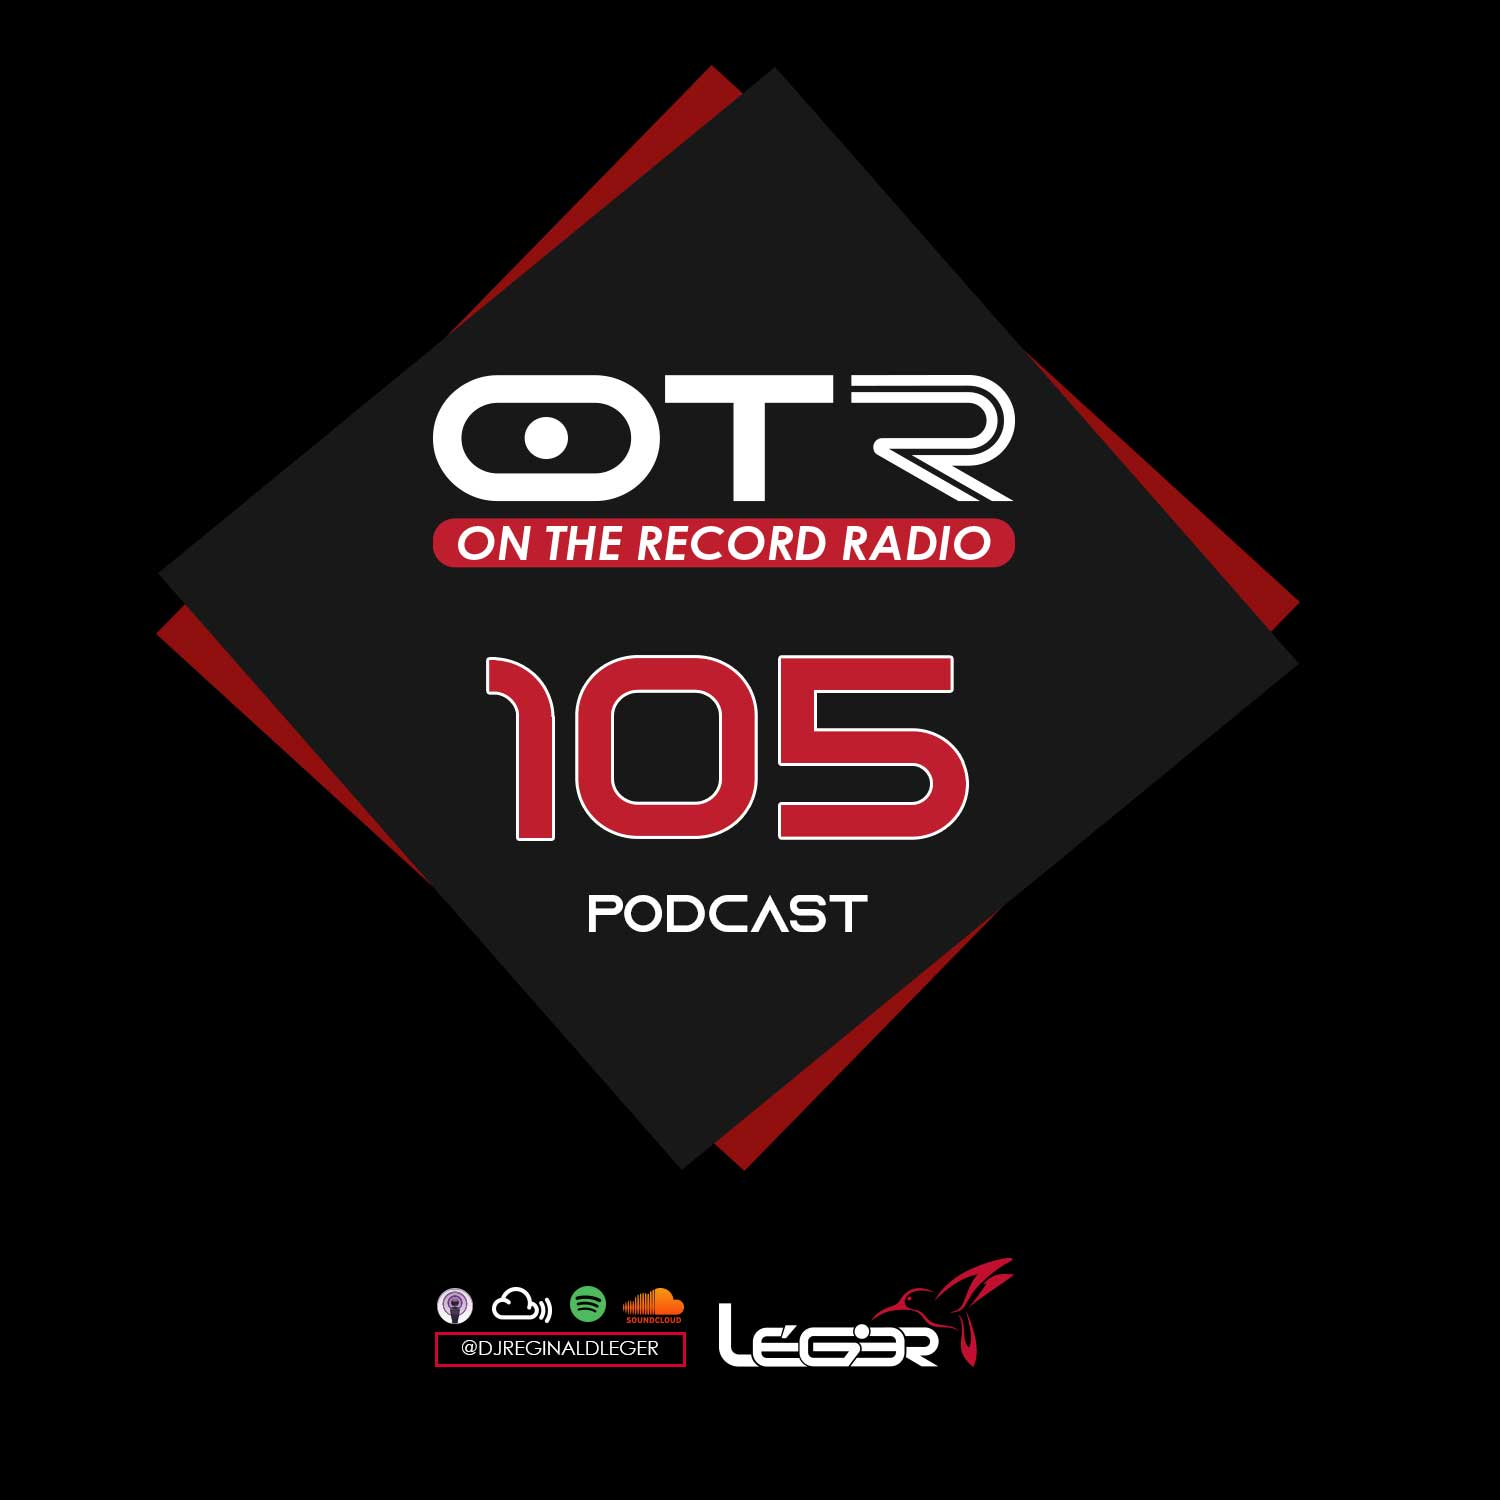 On The Record | OTR 105